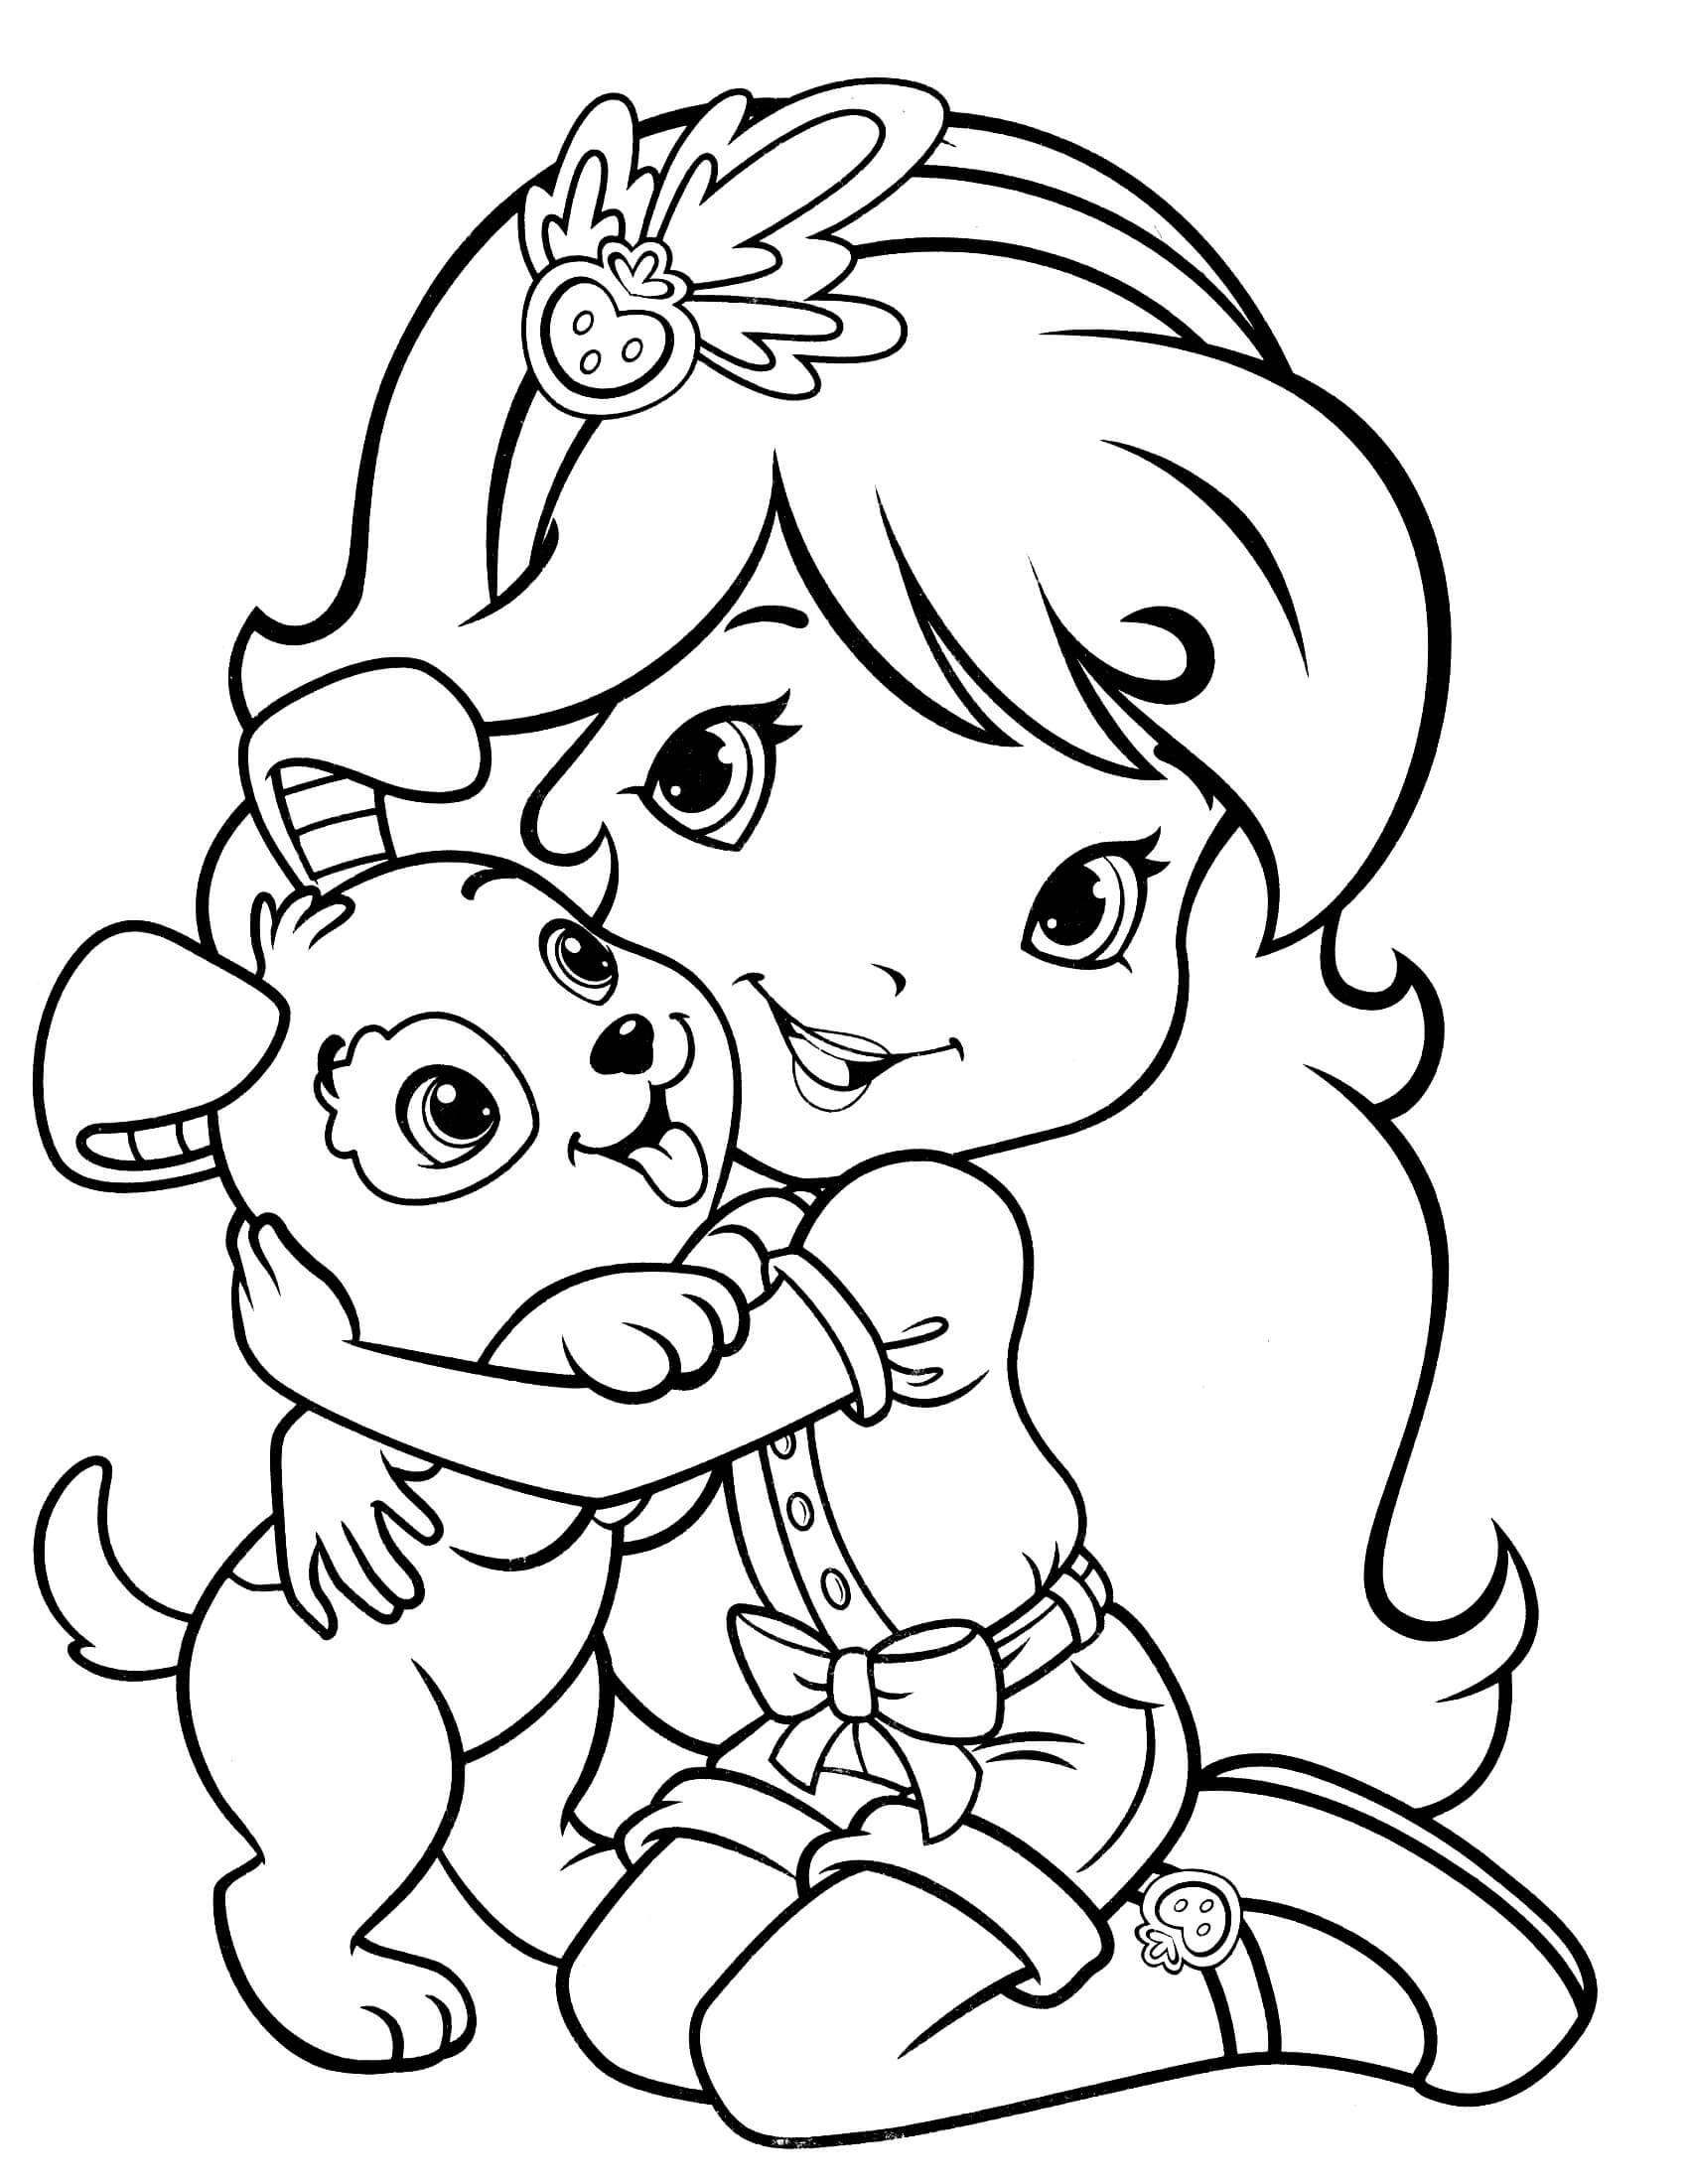 strawberry for coloring free printable strawberry shortcake coloring page 02 strawberry for coloring